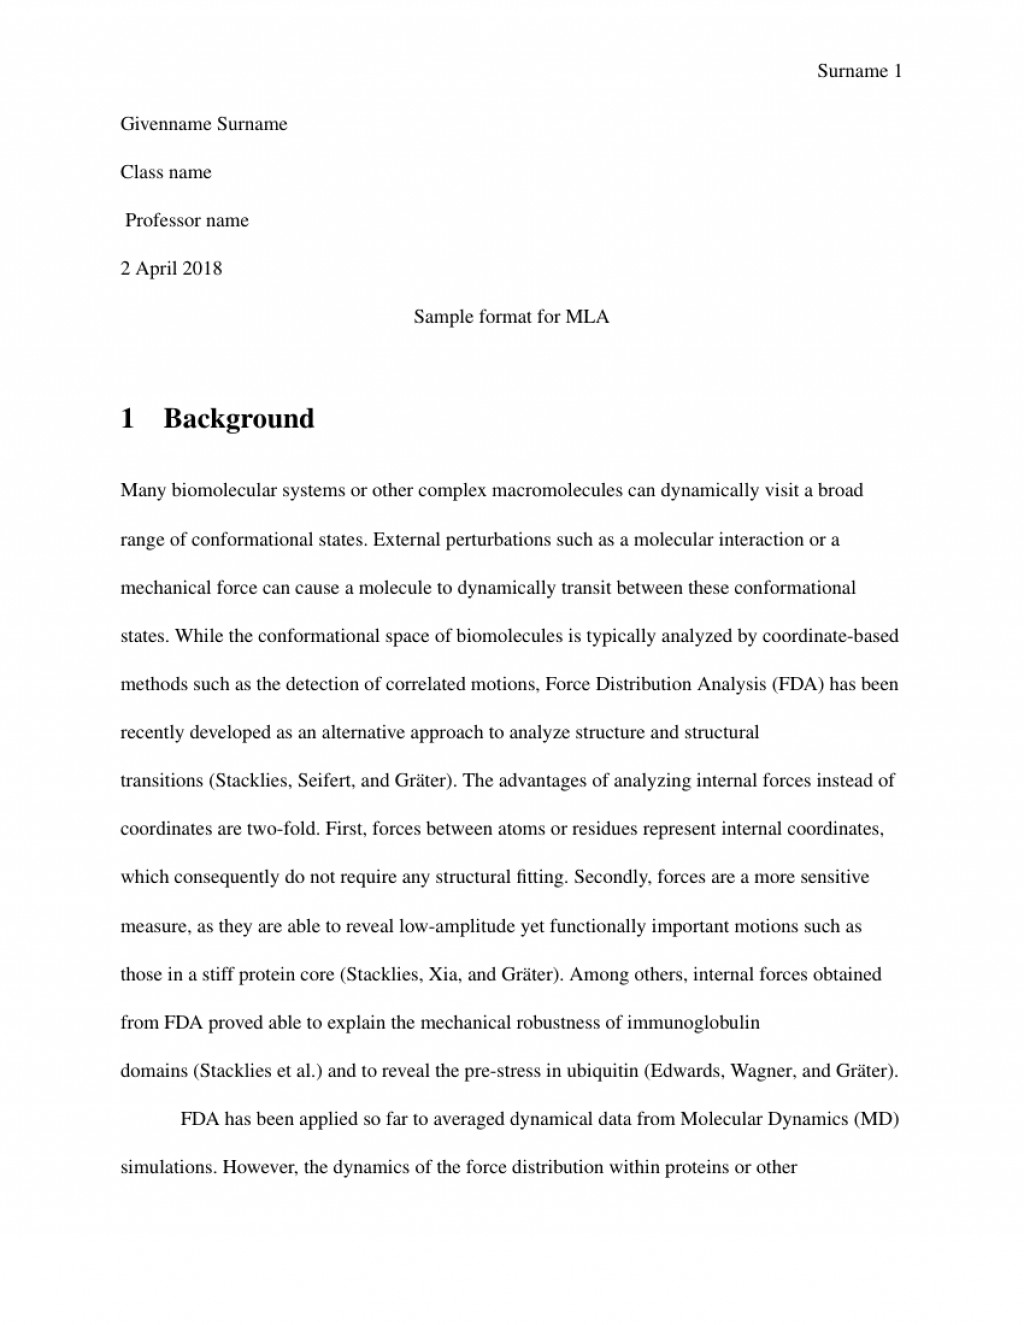 012 Article Mla Research Paper Format Awesome Template Outline Example Large